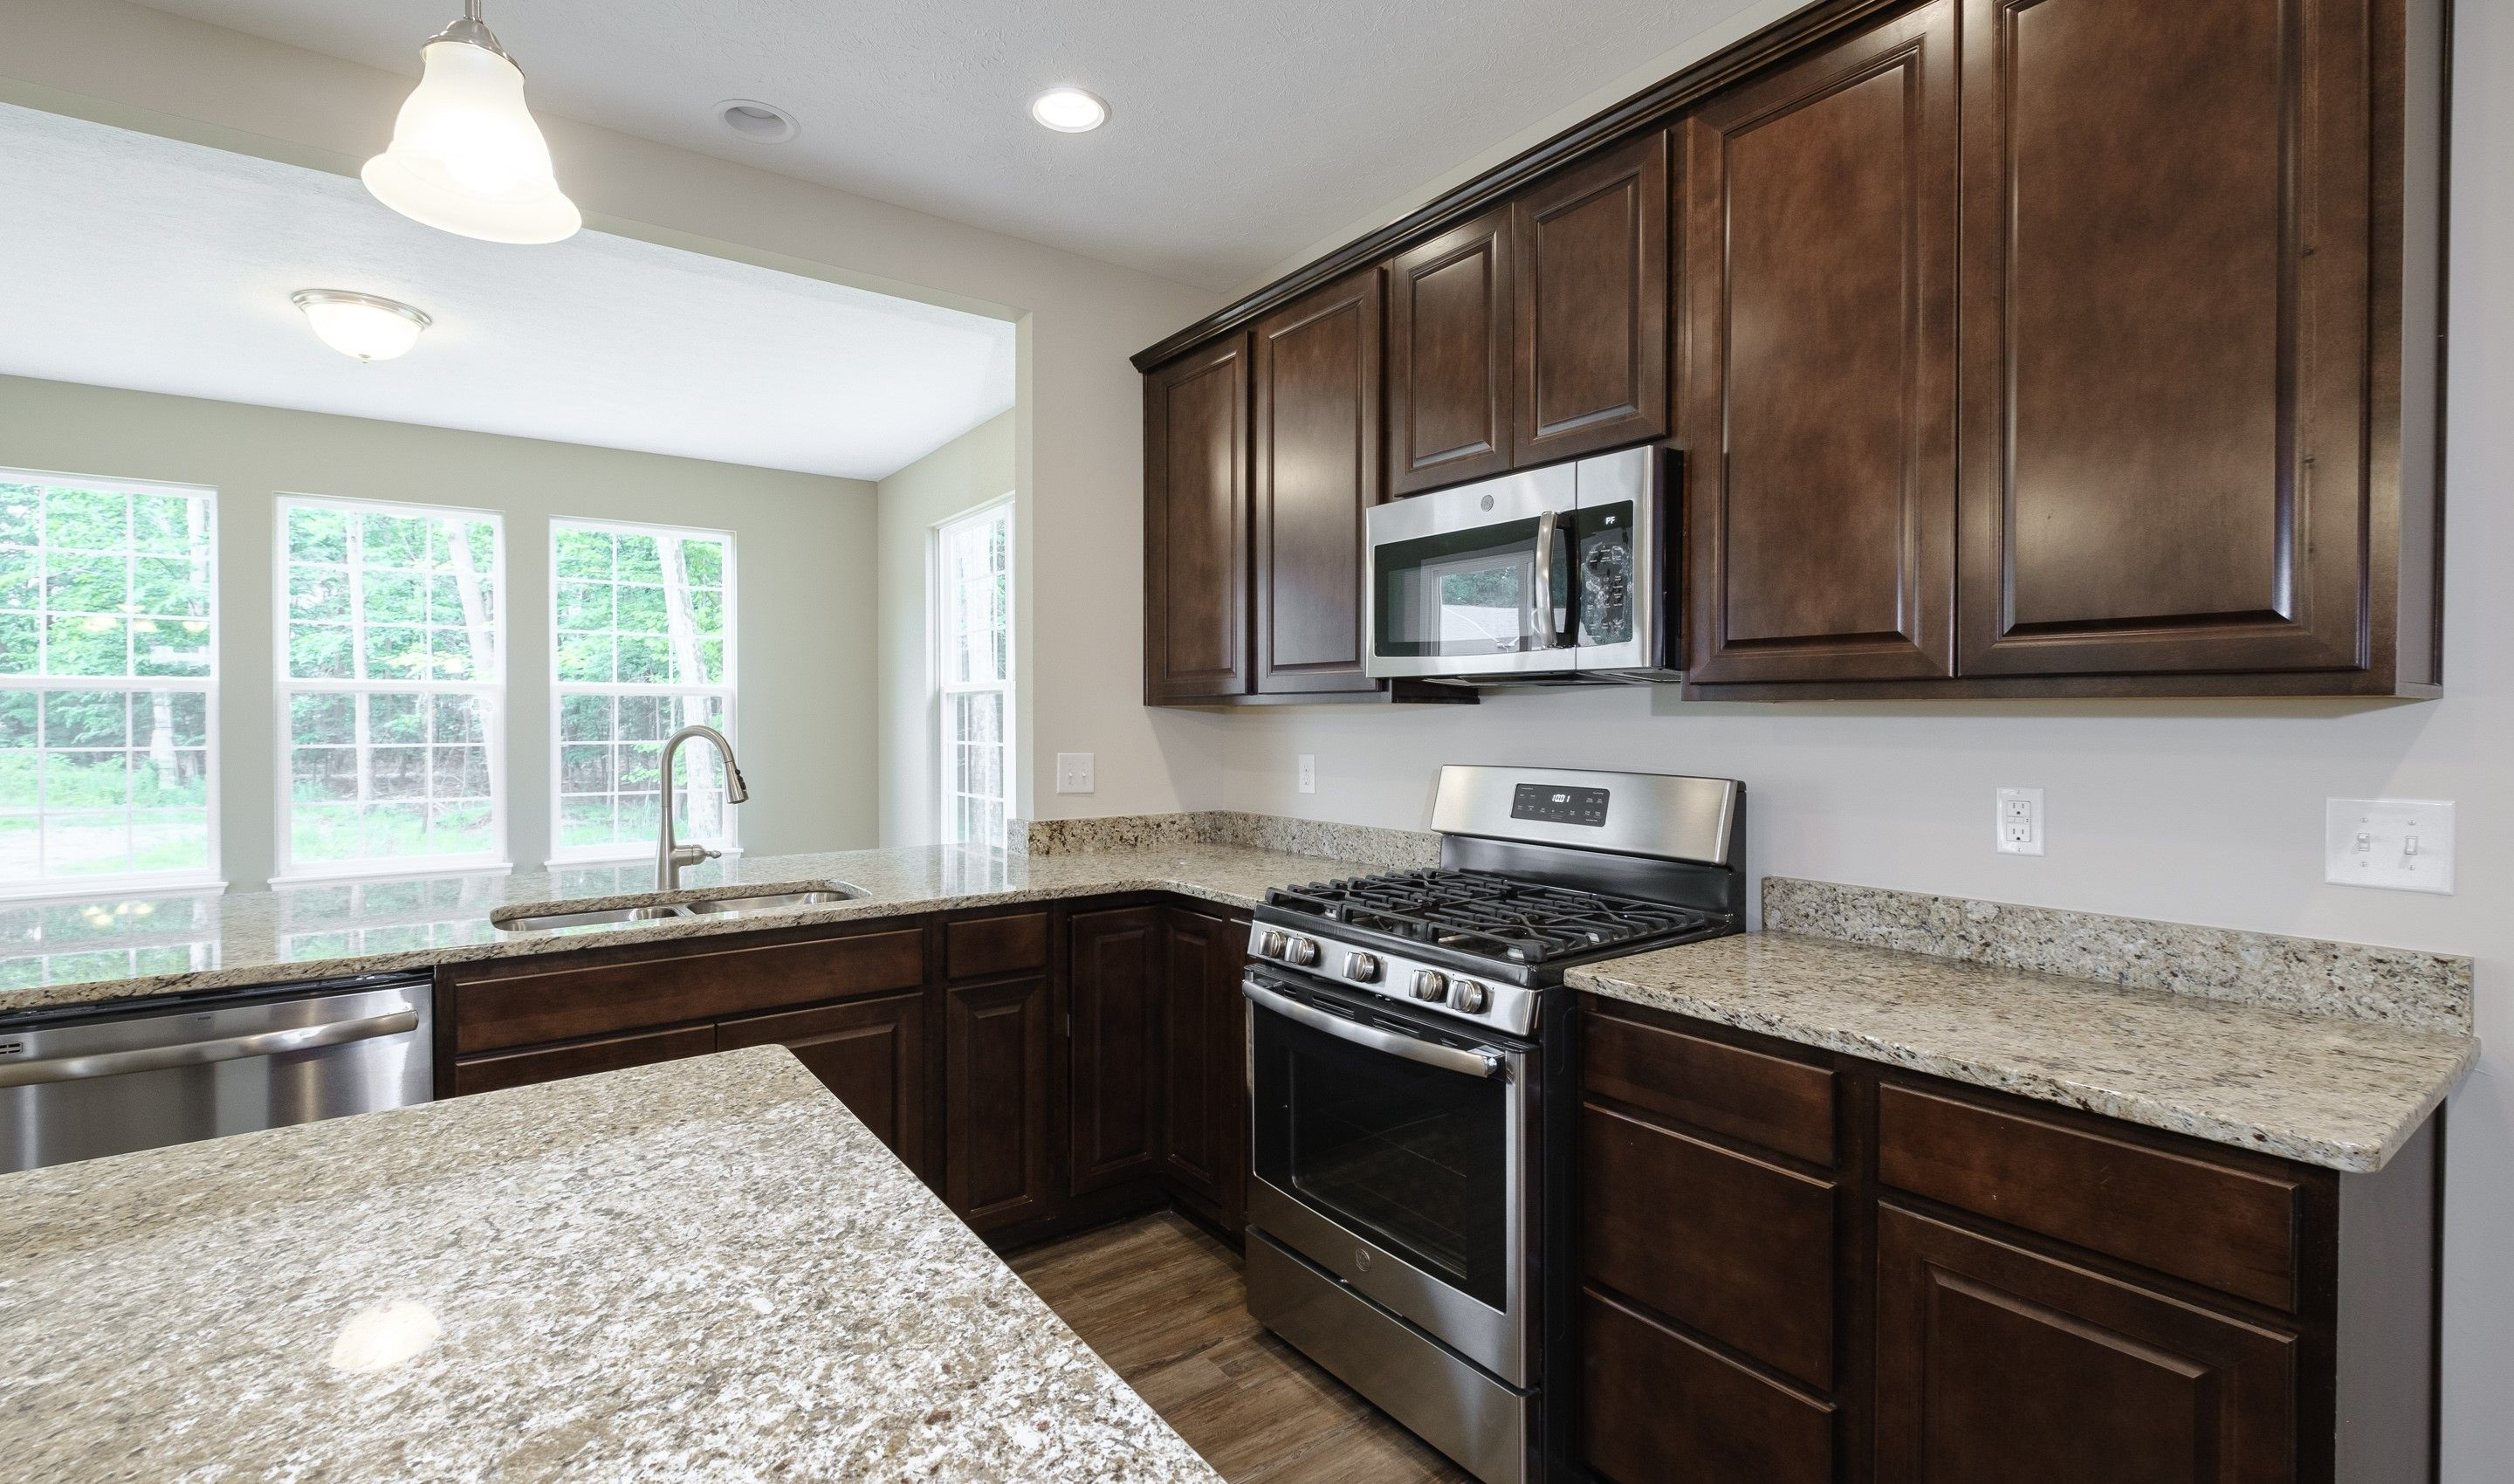 Kitchen featured in the Brantwood By K. Hovnanian® Homes in Cleveland, OH